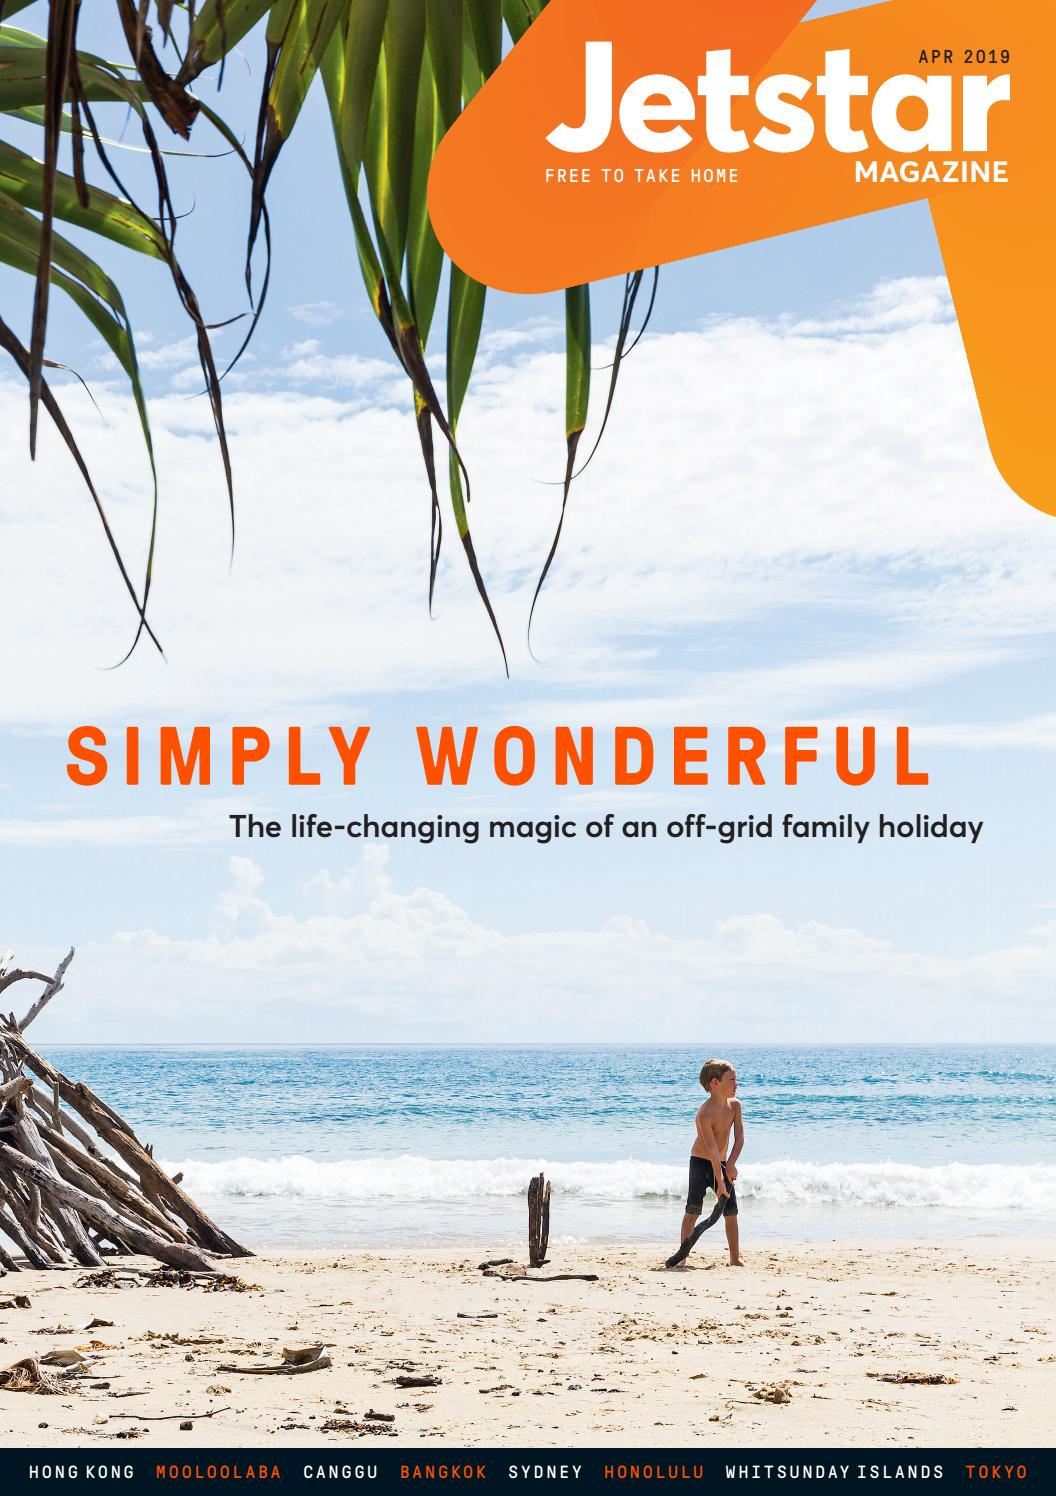 Jetstar Australia Magazine - APRIL 2019 by Jetstar Magazine